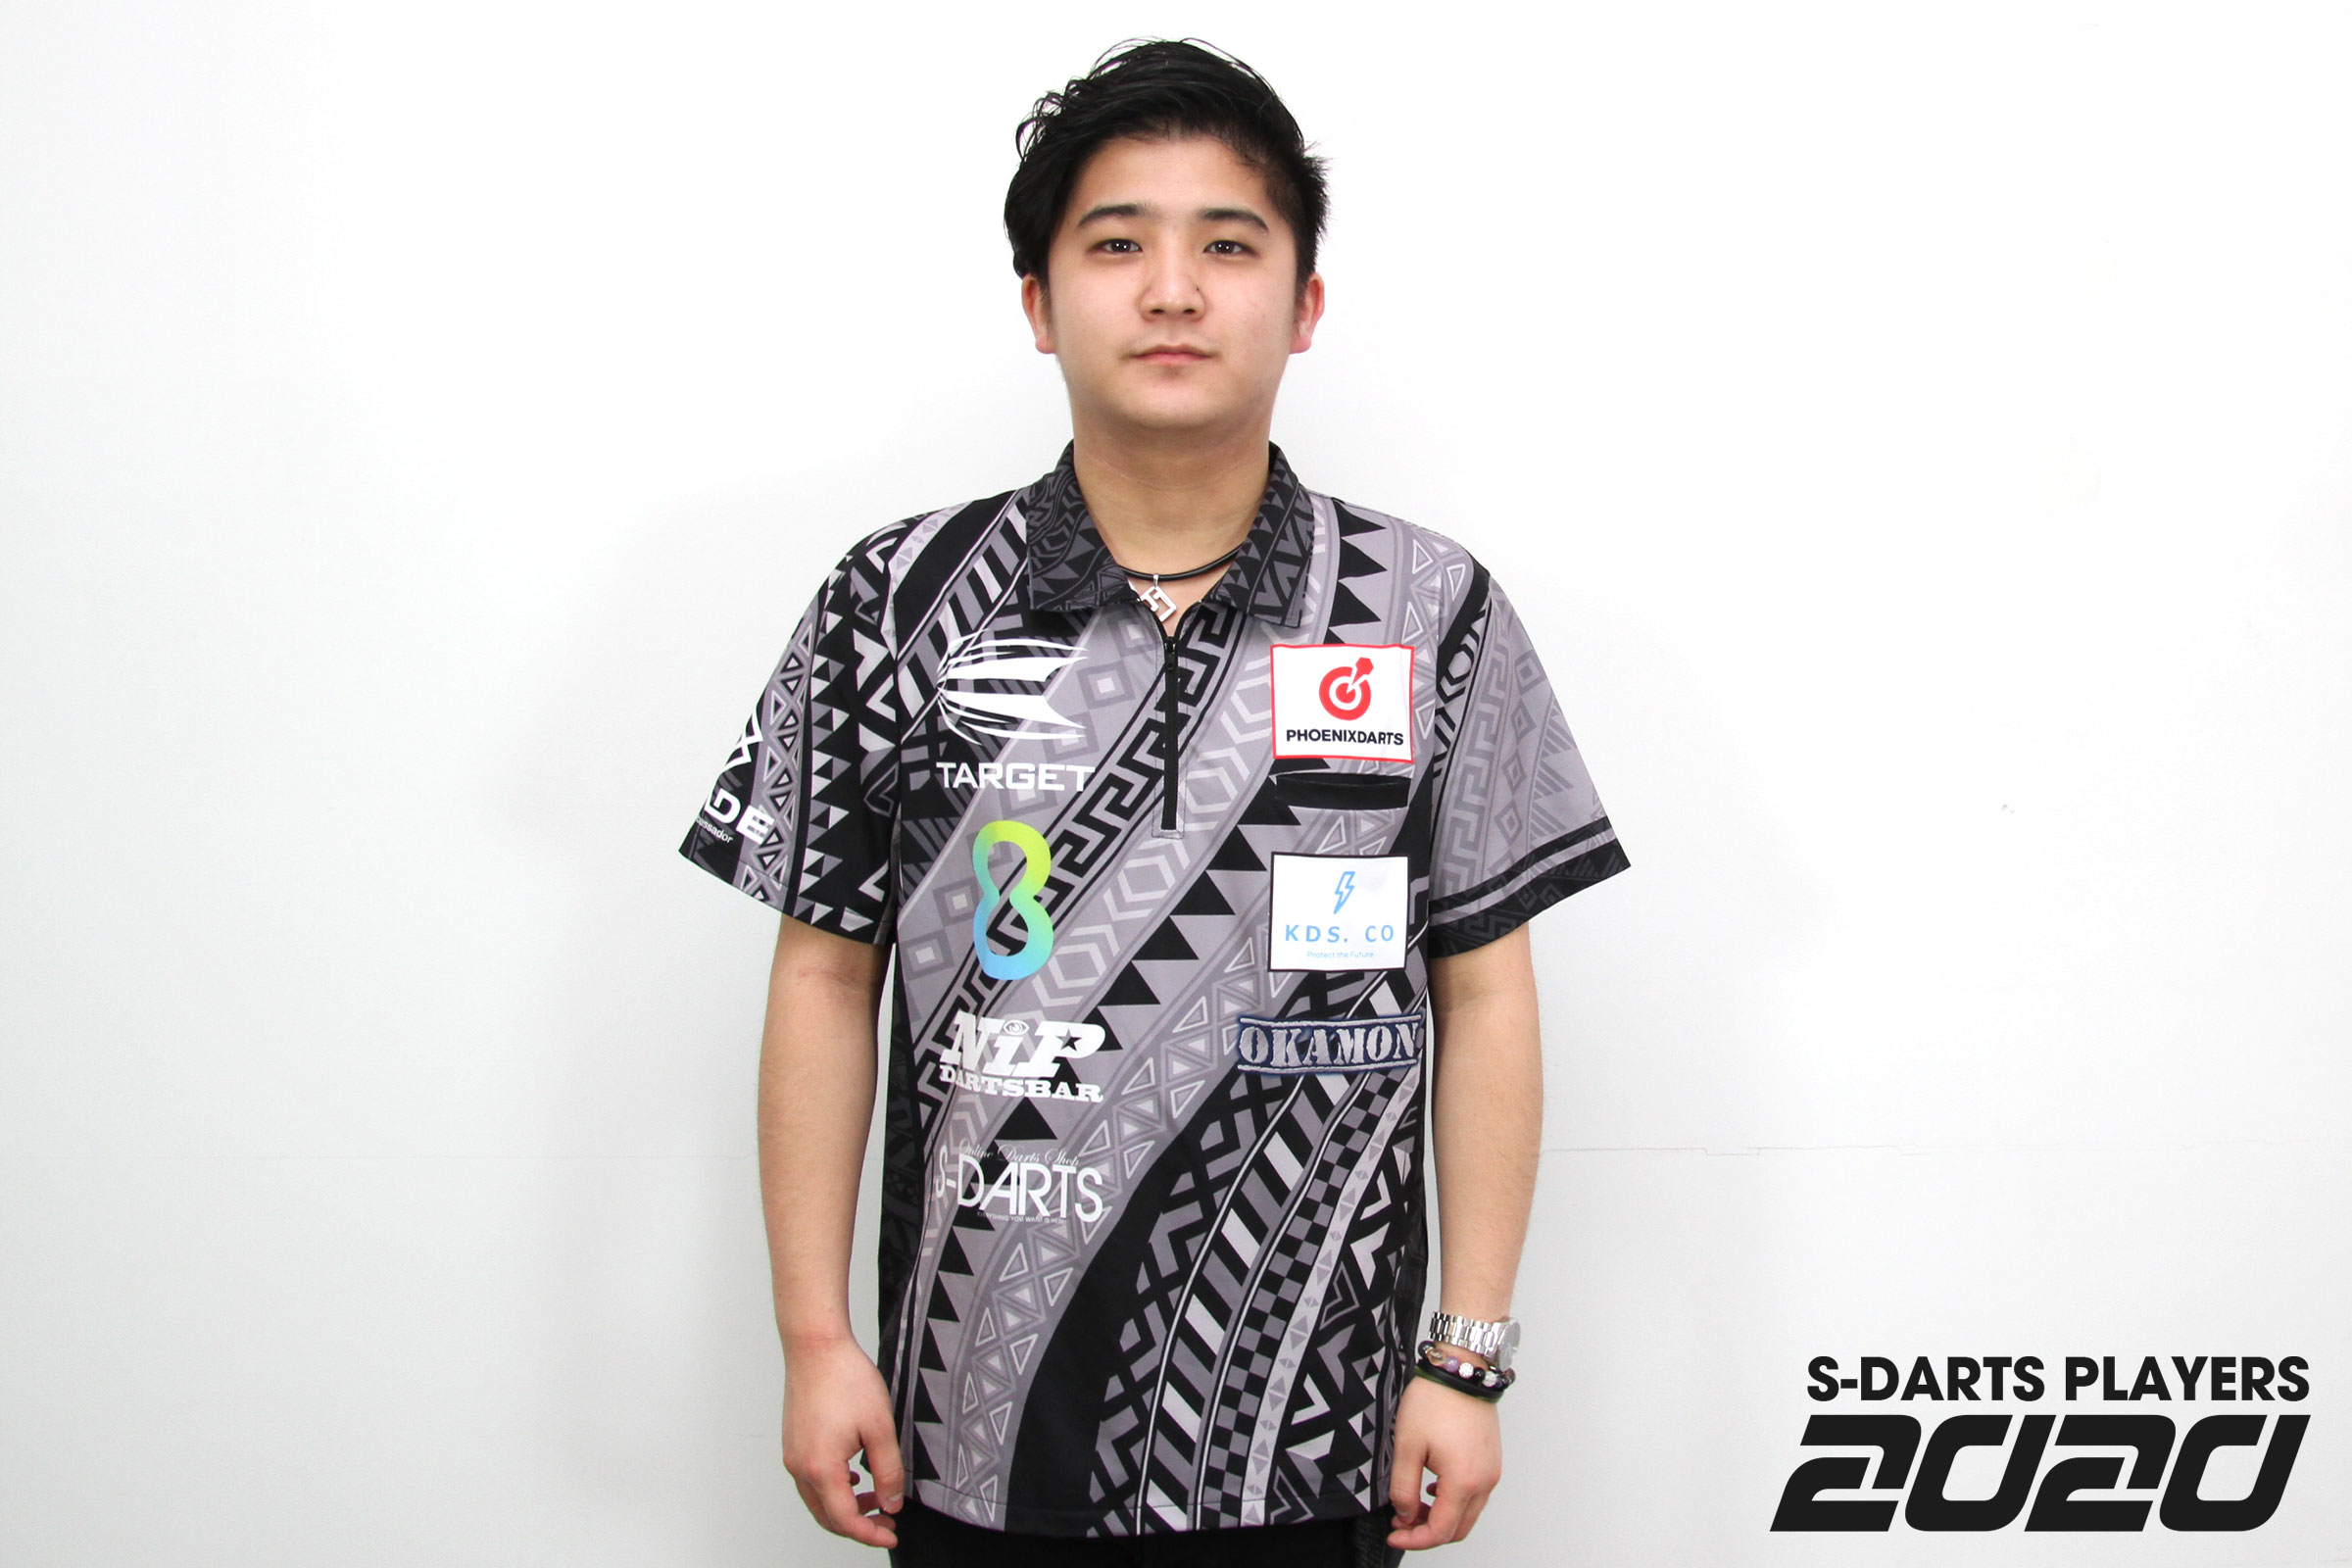 S-DARTS PLAYERS 2020│後藤智弥